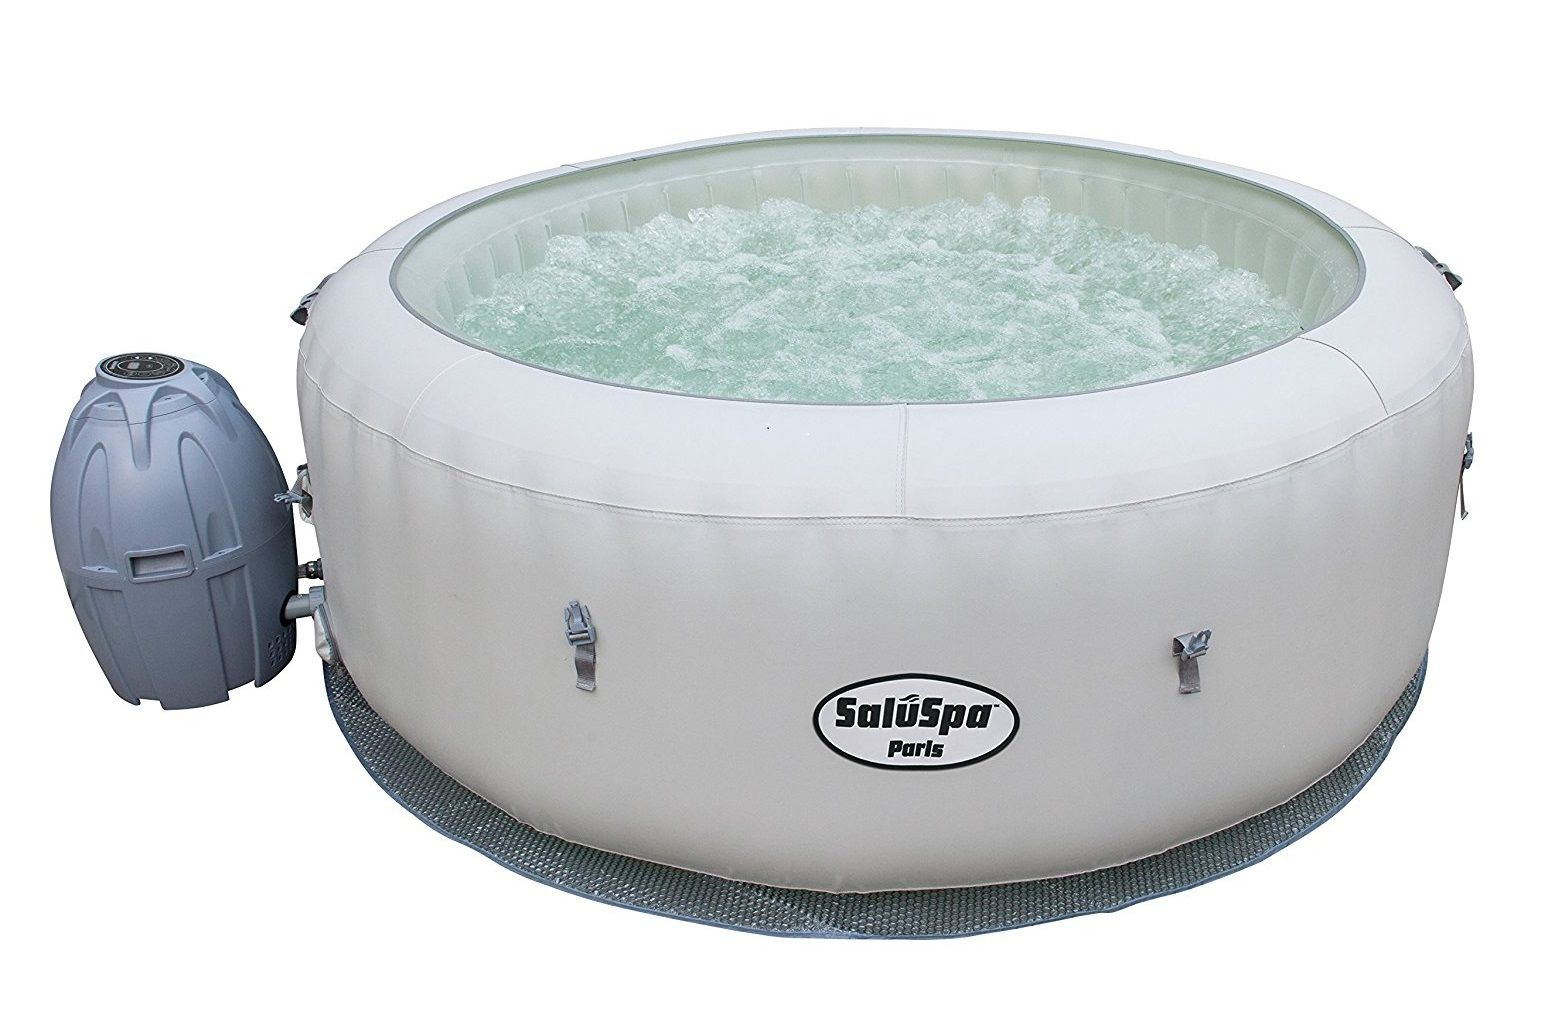 SaluSpa Paris AirJet Inflatable Hot Tub w/ LED Light Show | Shower ...